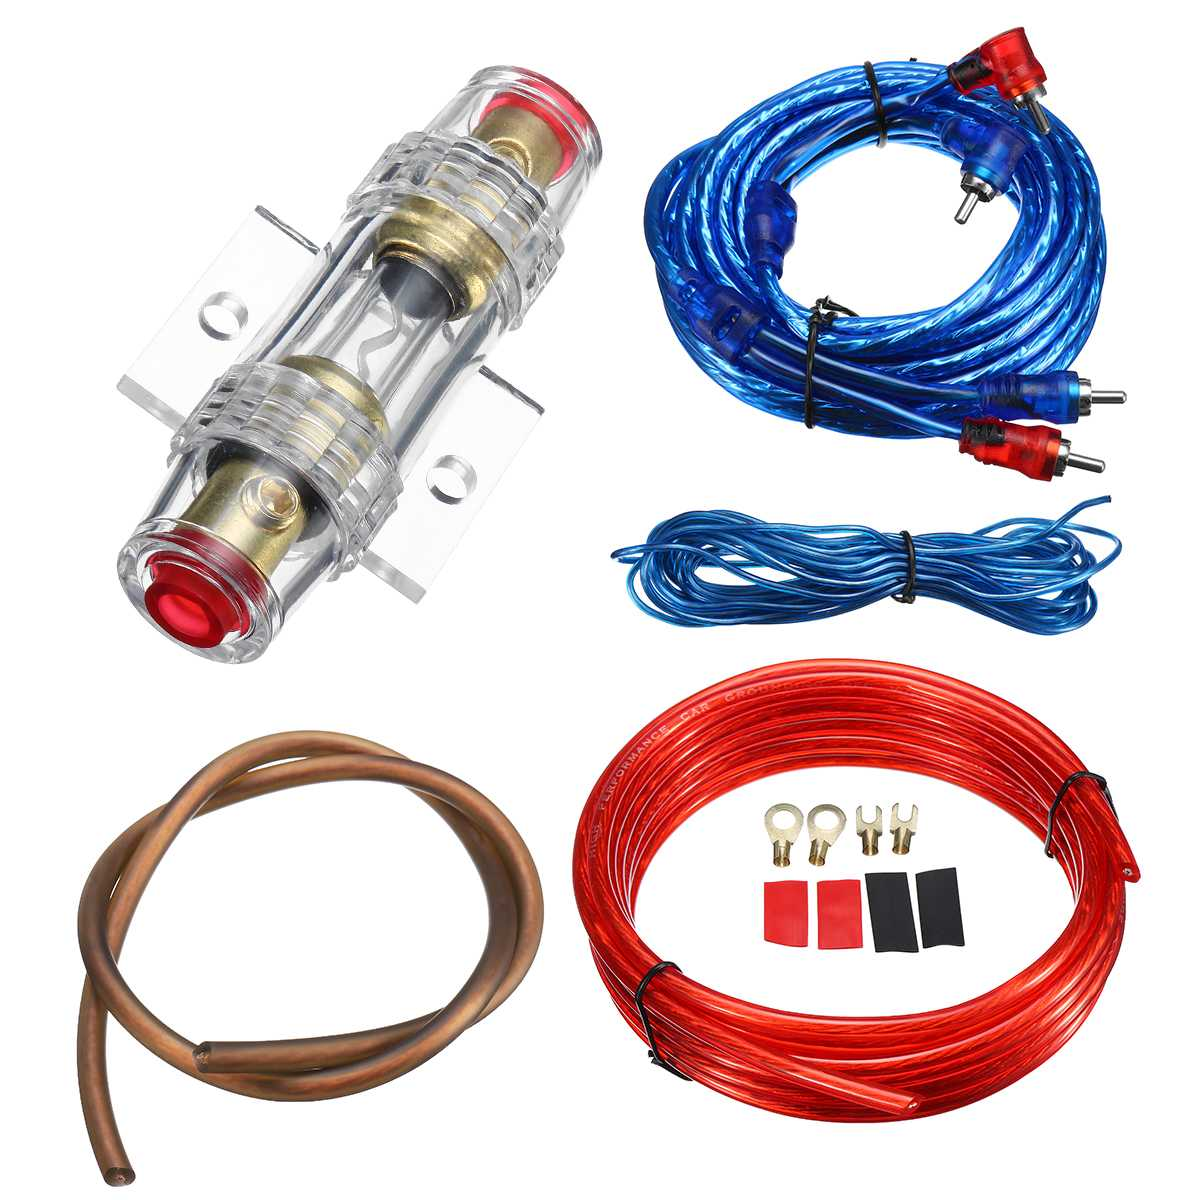 small resolution of 1500w car audio wire 8ga amplifier cable subwoofer speaker installation kit amp rca power cable agu fuse set in battery cables connectors from automobiles